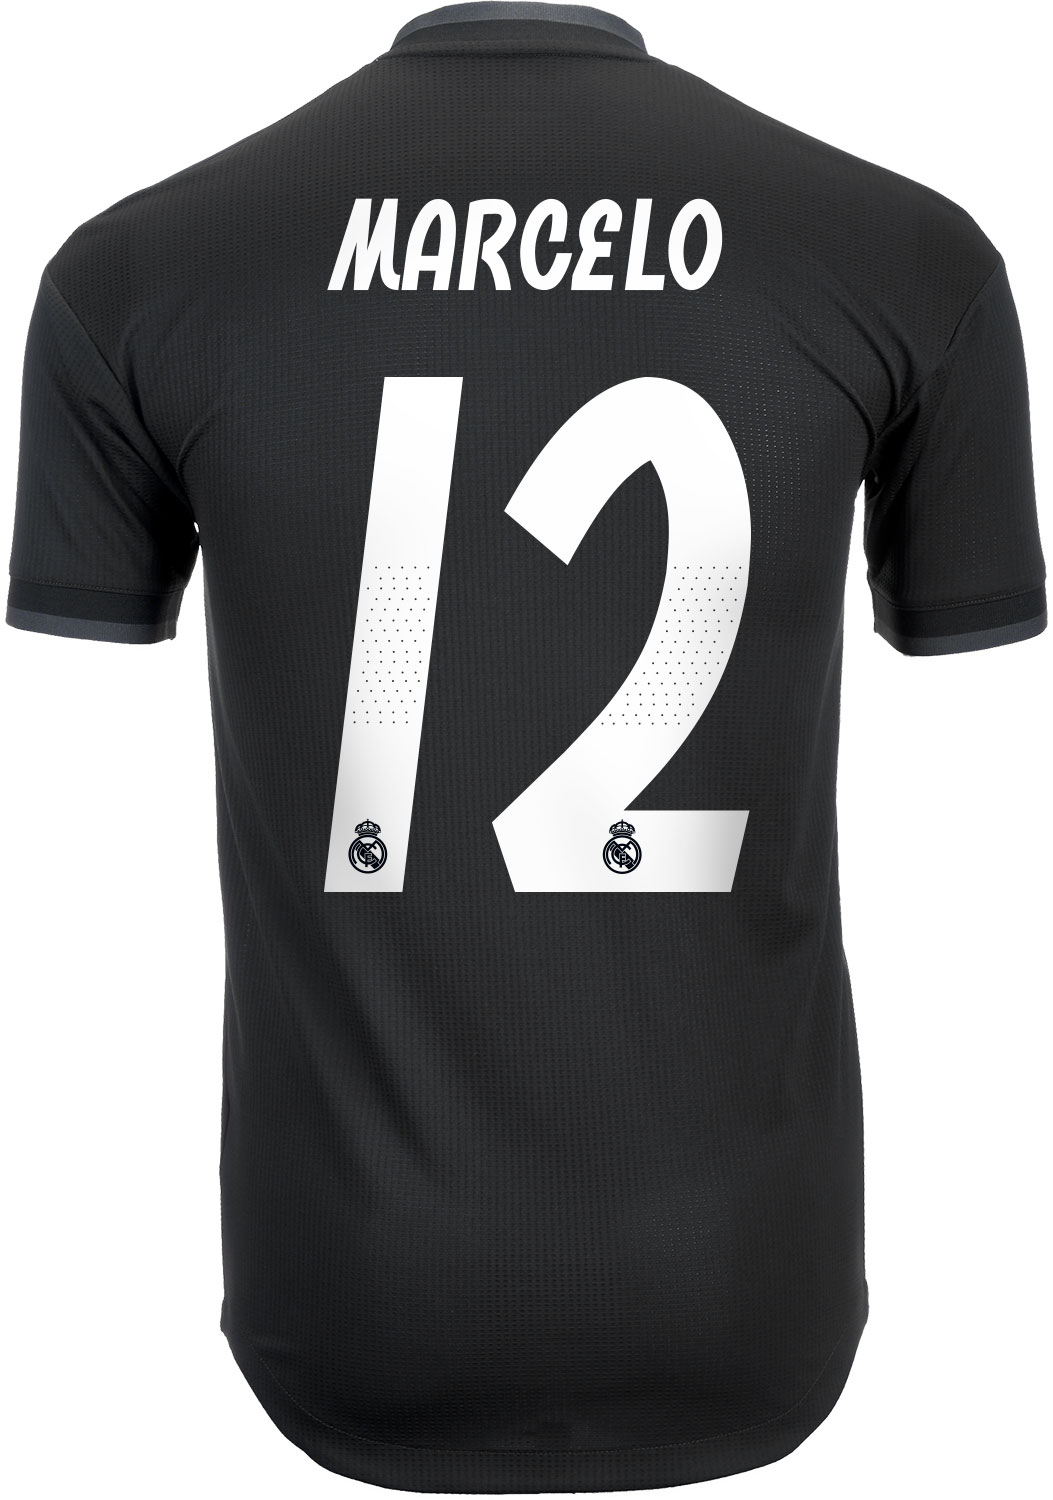 adidas Marcelo Real Madrid Away Authentic Jersey 2018-19 - SoccerPro 8889e71b9